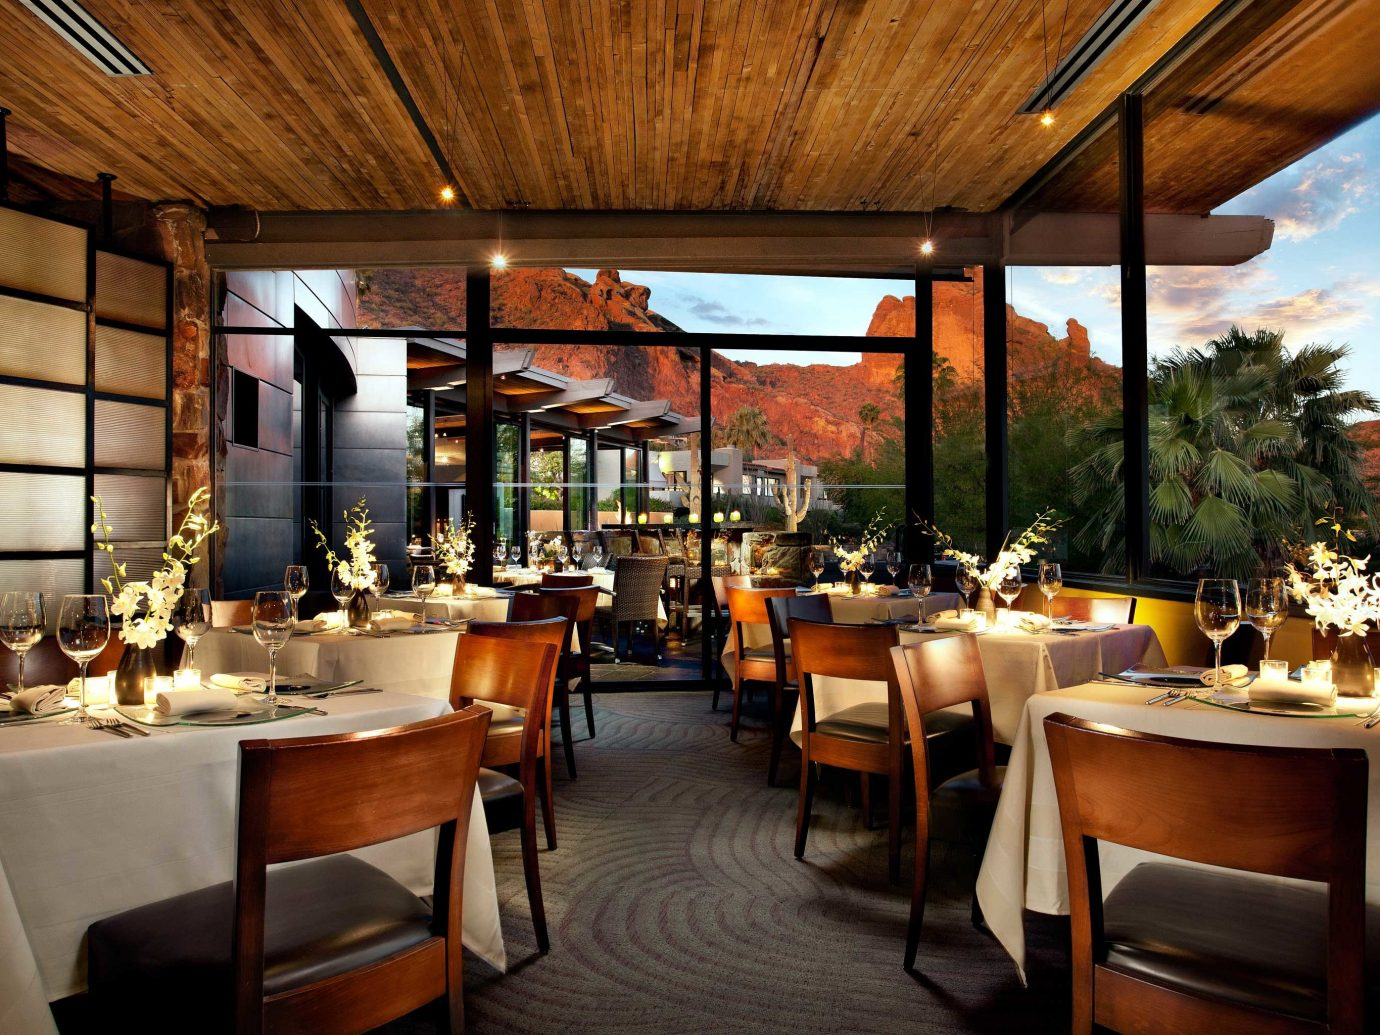 Restaurant at Sanctuary on Camelback Mountain Resort and Spa